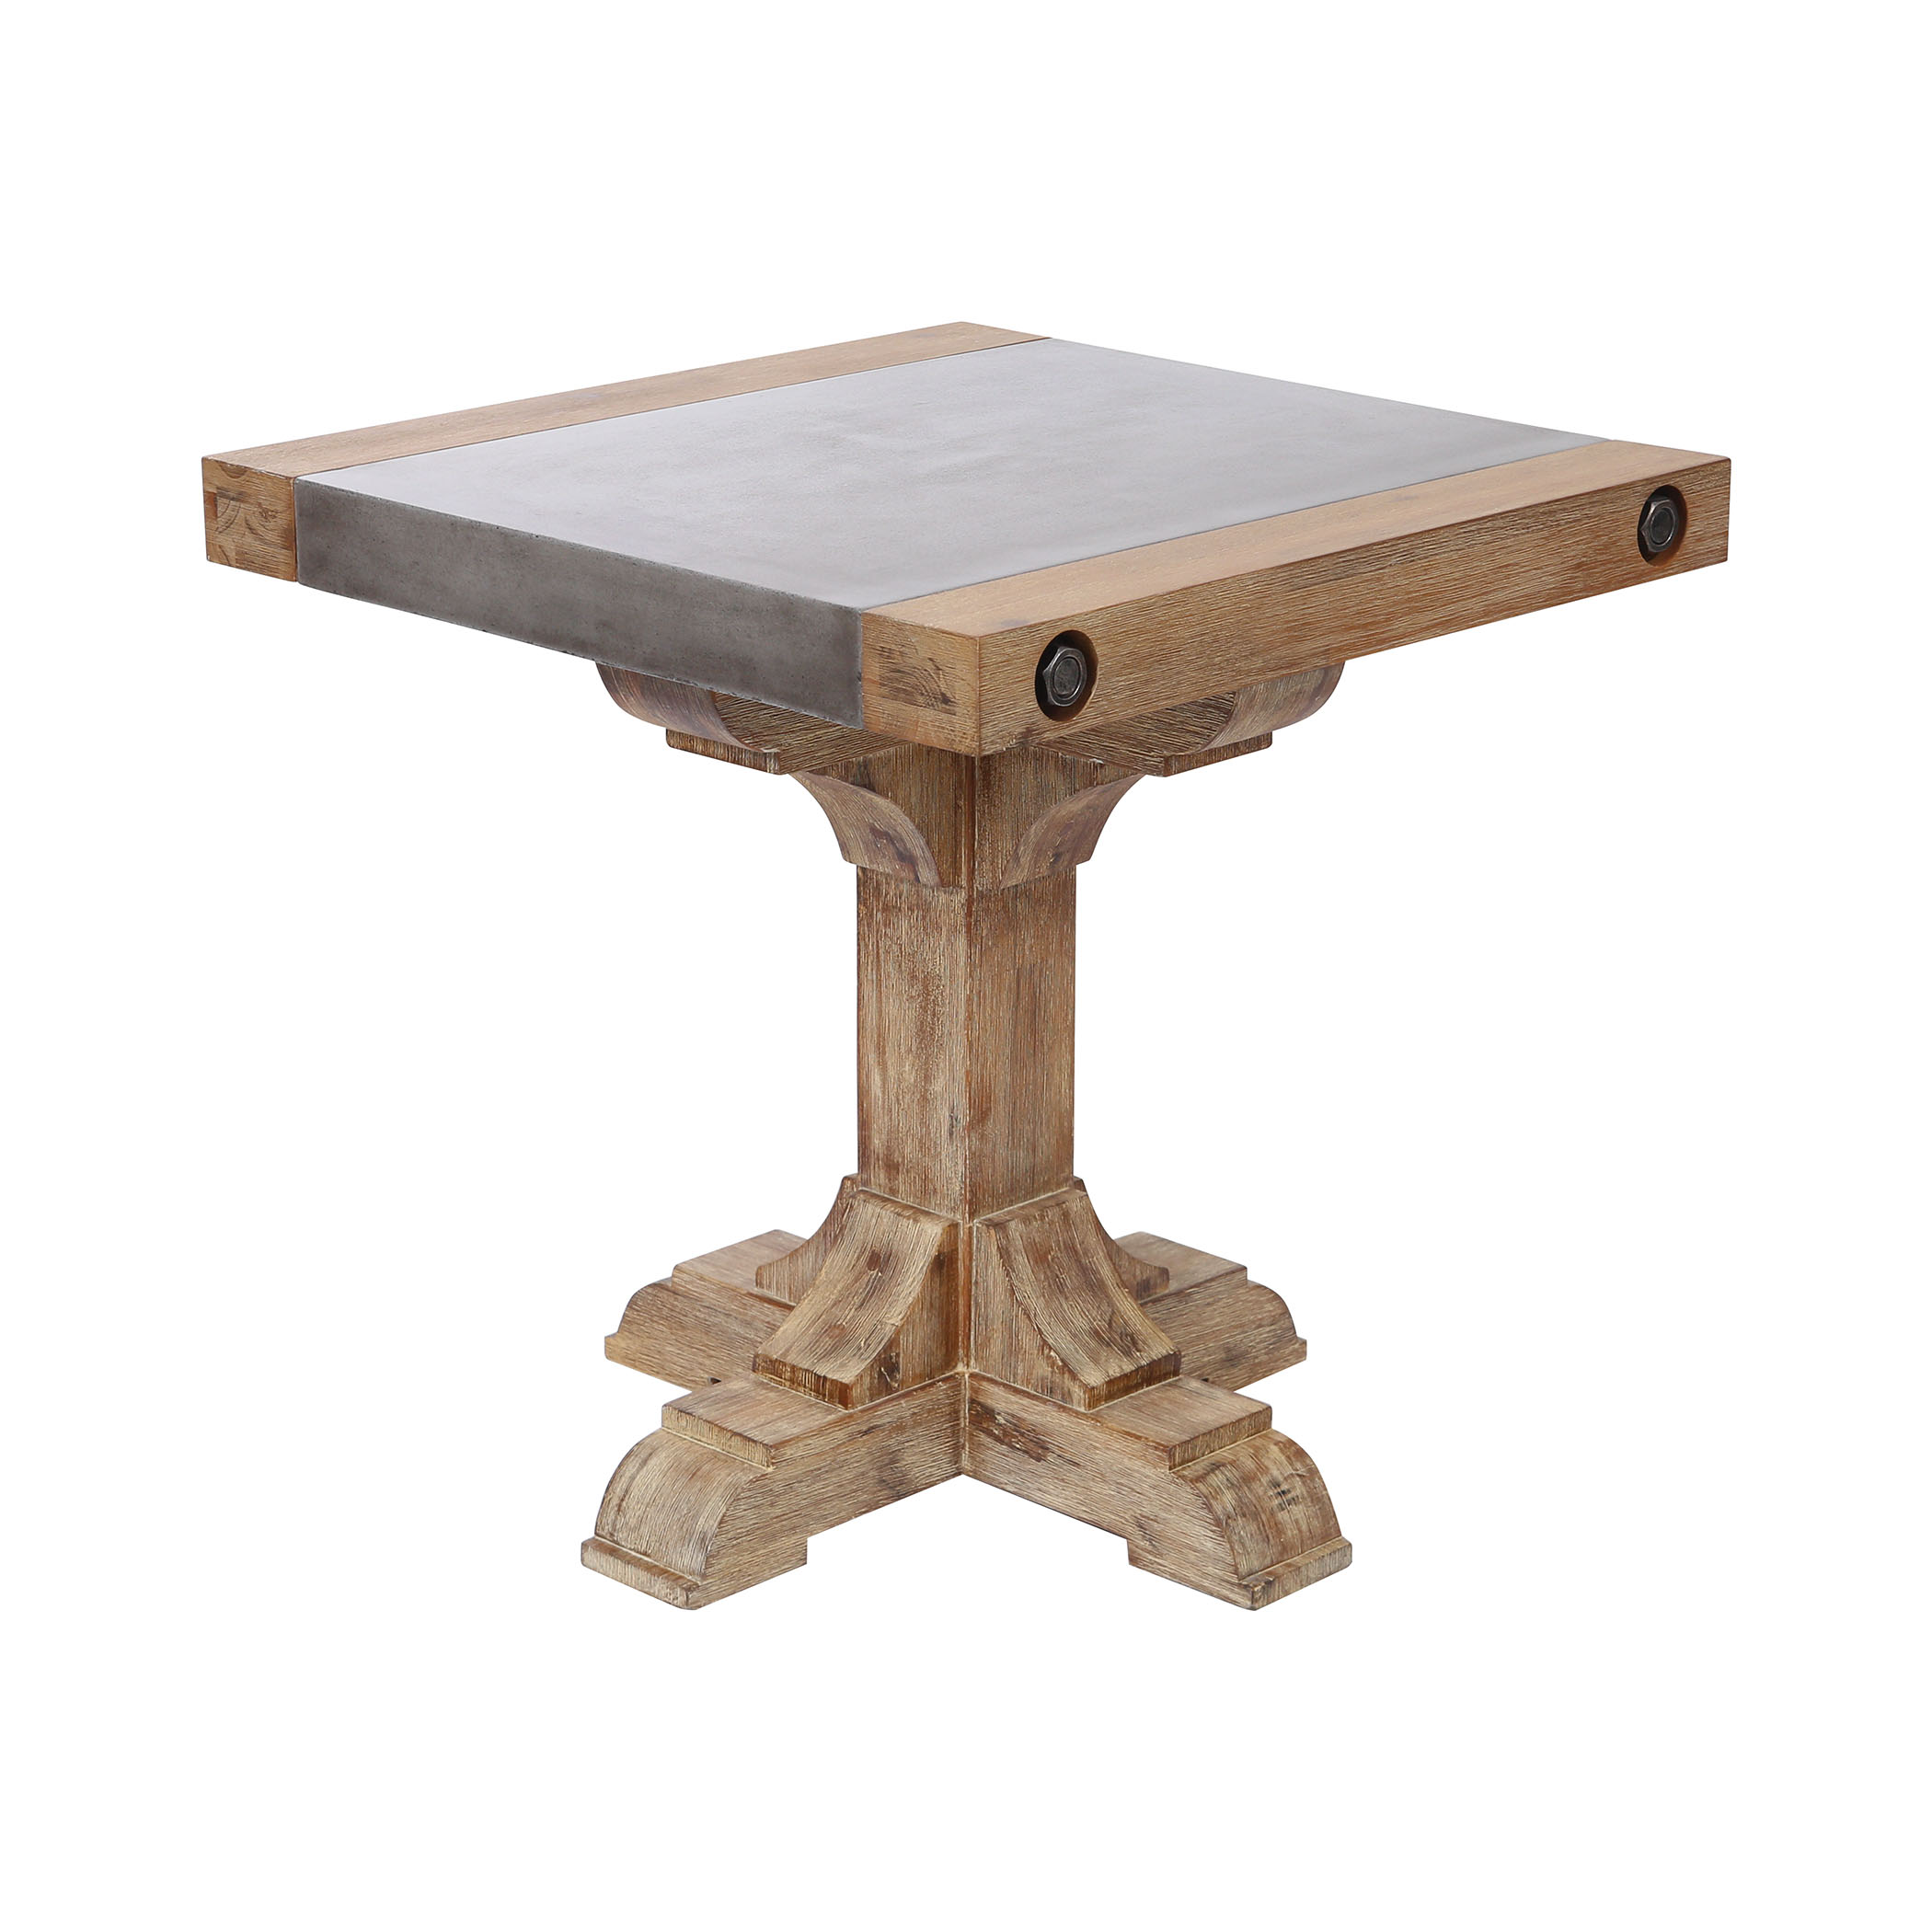 Pirate Accent Table in Concrete and Wood with Waxed Atlantic Finish | Elk Home